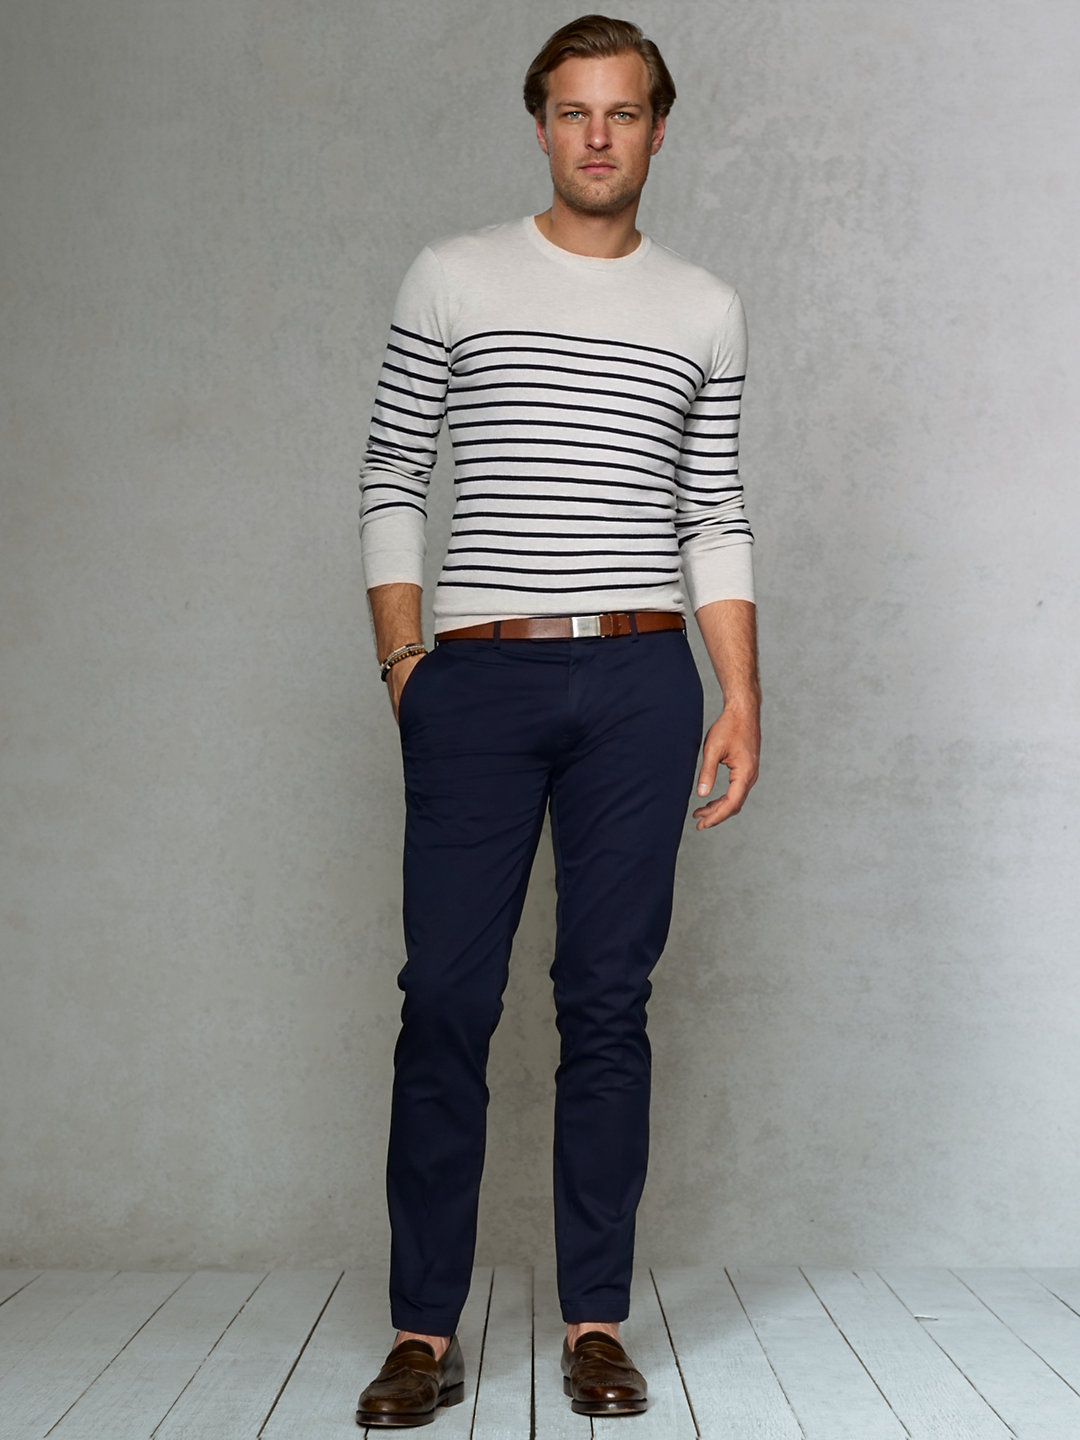 Chino Slim Lyst Lauren Pant Blue Men Fit For In Polo Ralph Stretch nrYgxqtYw